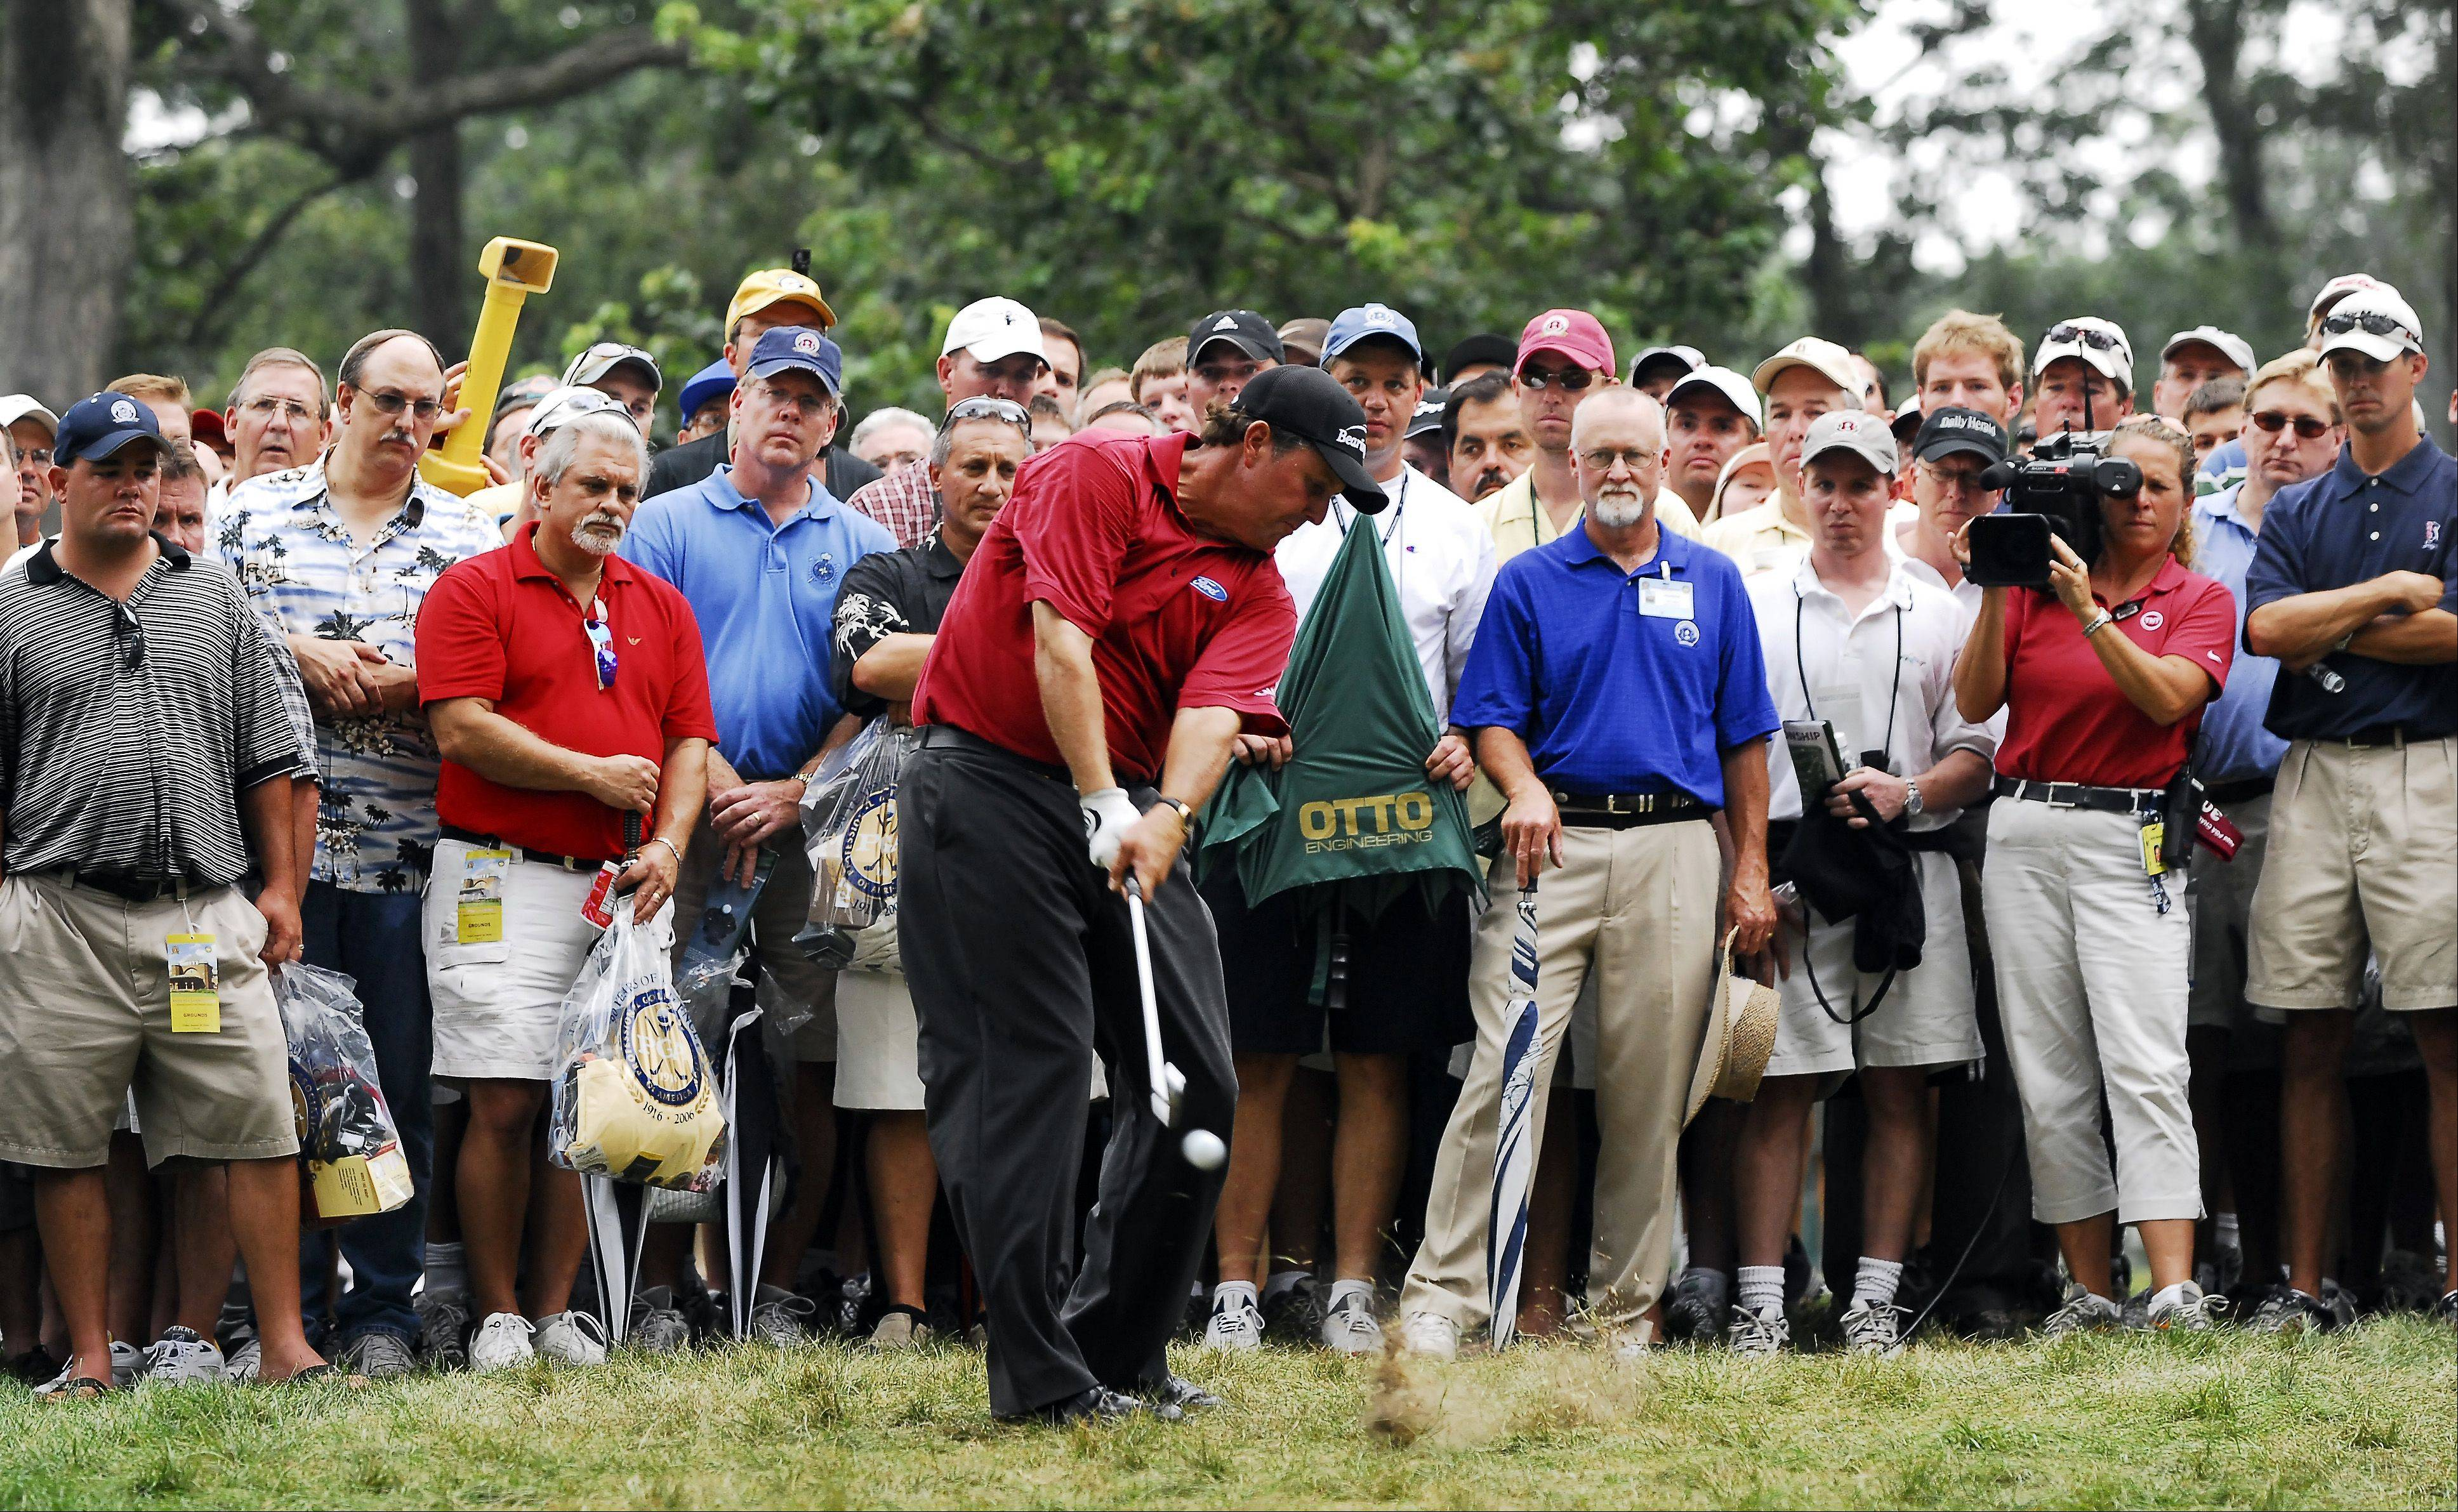 Round two of the 88th PGA Championship Friday; August 18, 2006 at Medinah Country Club in Medinah. Here Phil Mickelson hits from the crowd on the 4th.